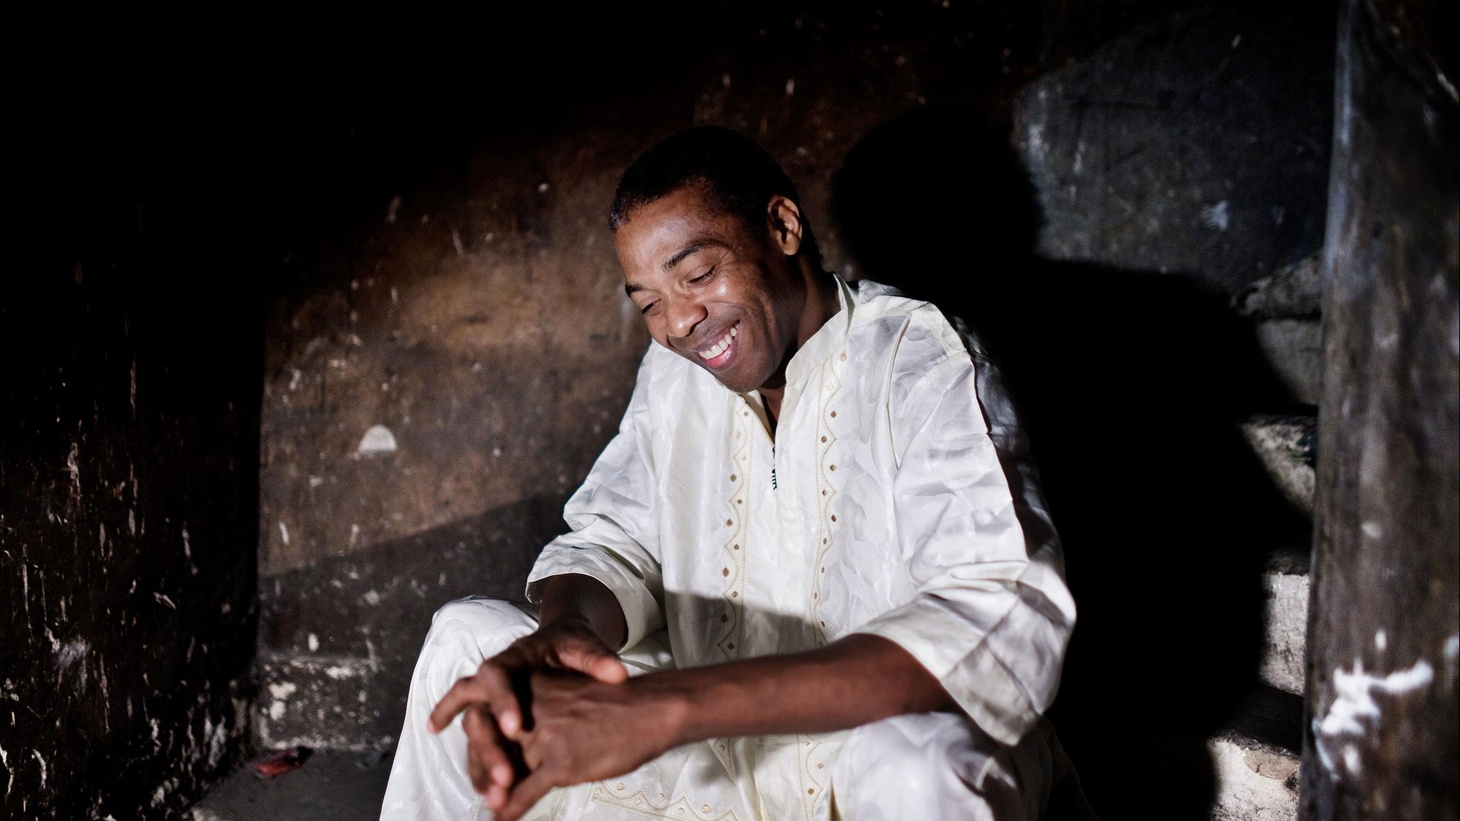 Afrobeat prince Femi Kuti brings his big band, The Positive Force, for a live session celebrating his new release, Africa for Africa.